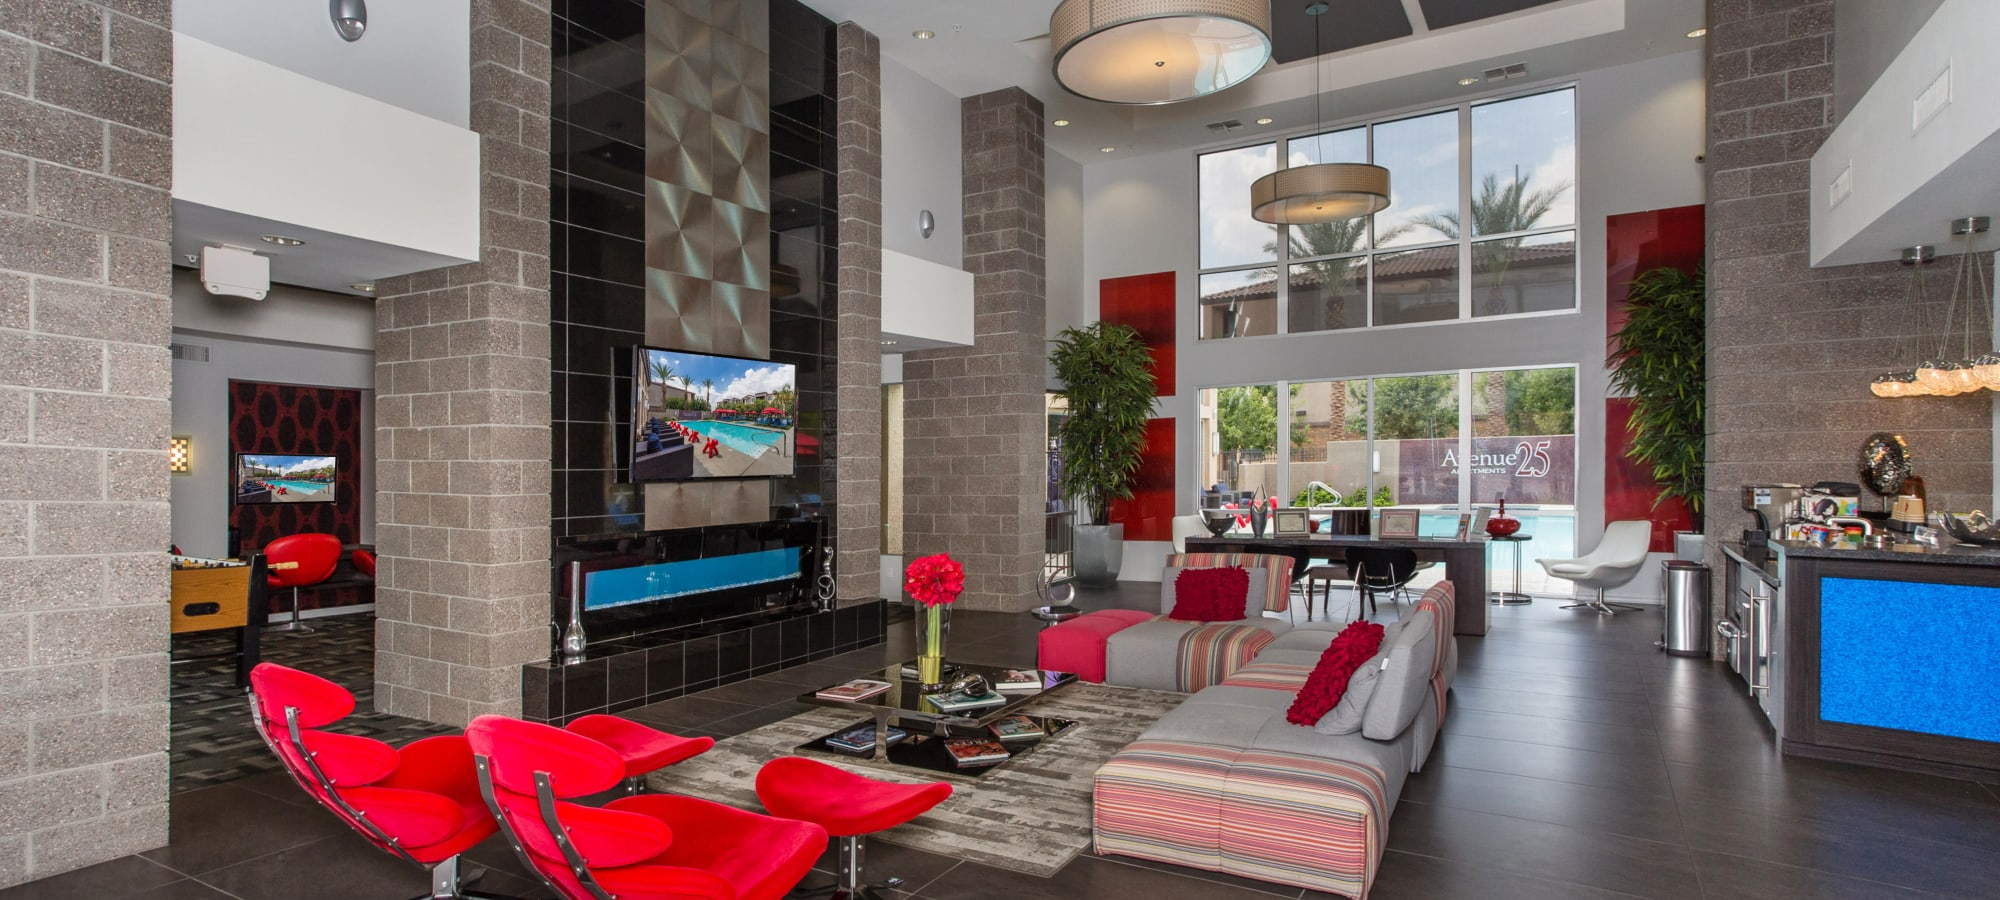 Seating in the lobby at Avenue 25 Apartments in Phoenix, Arizona